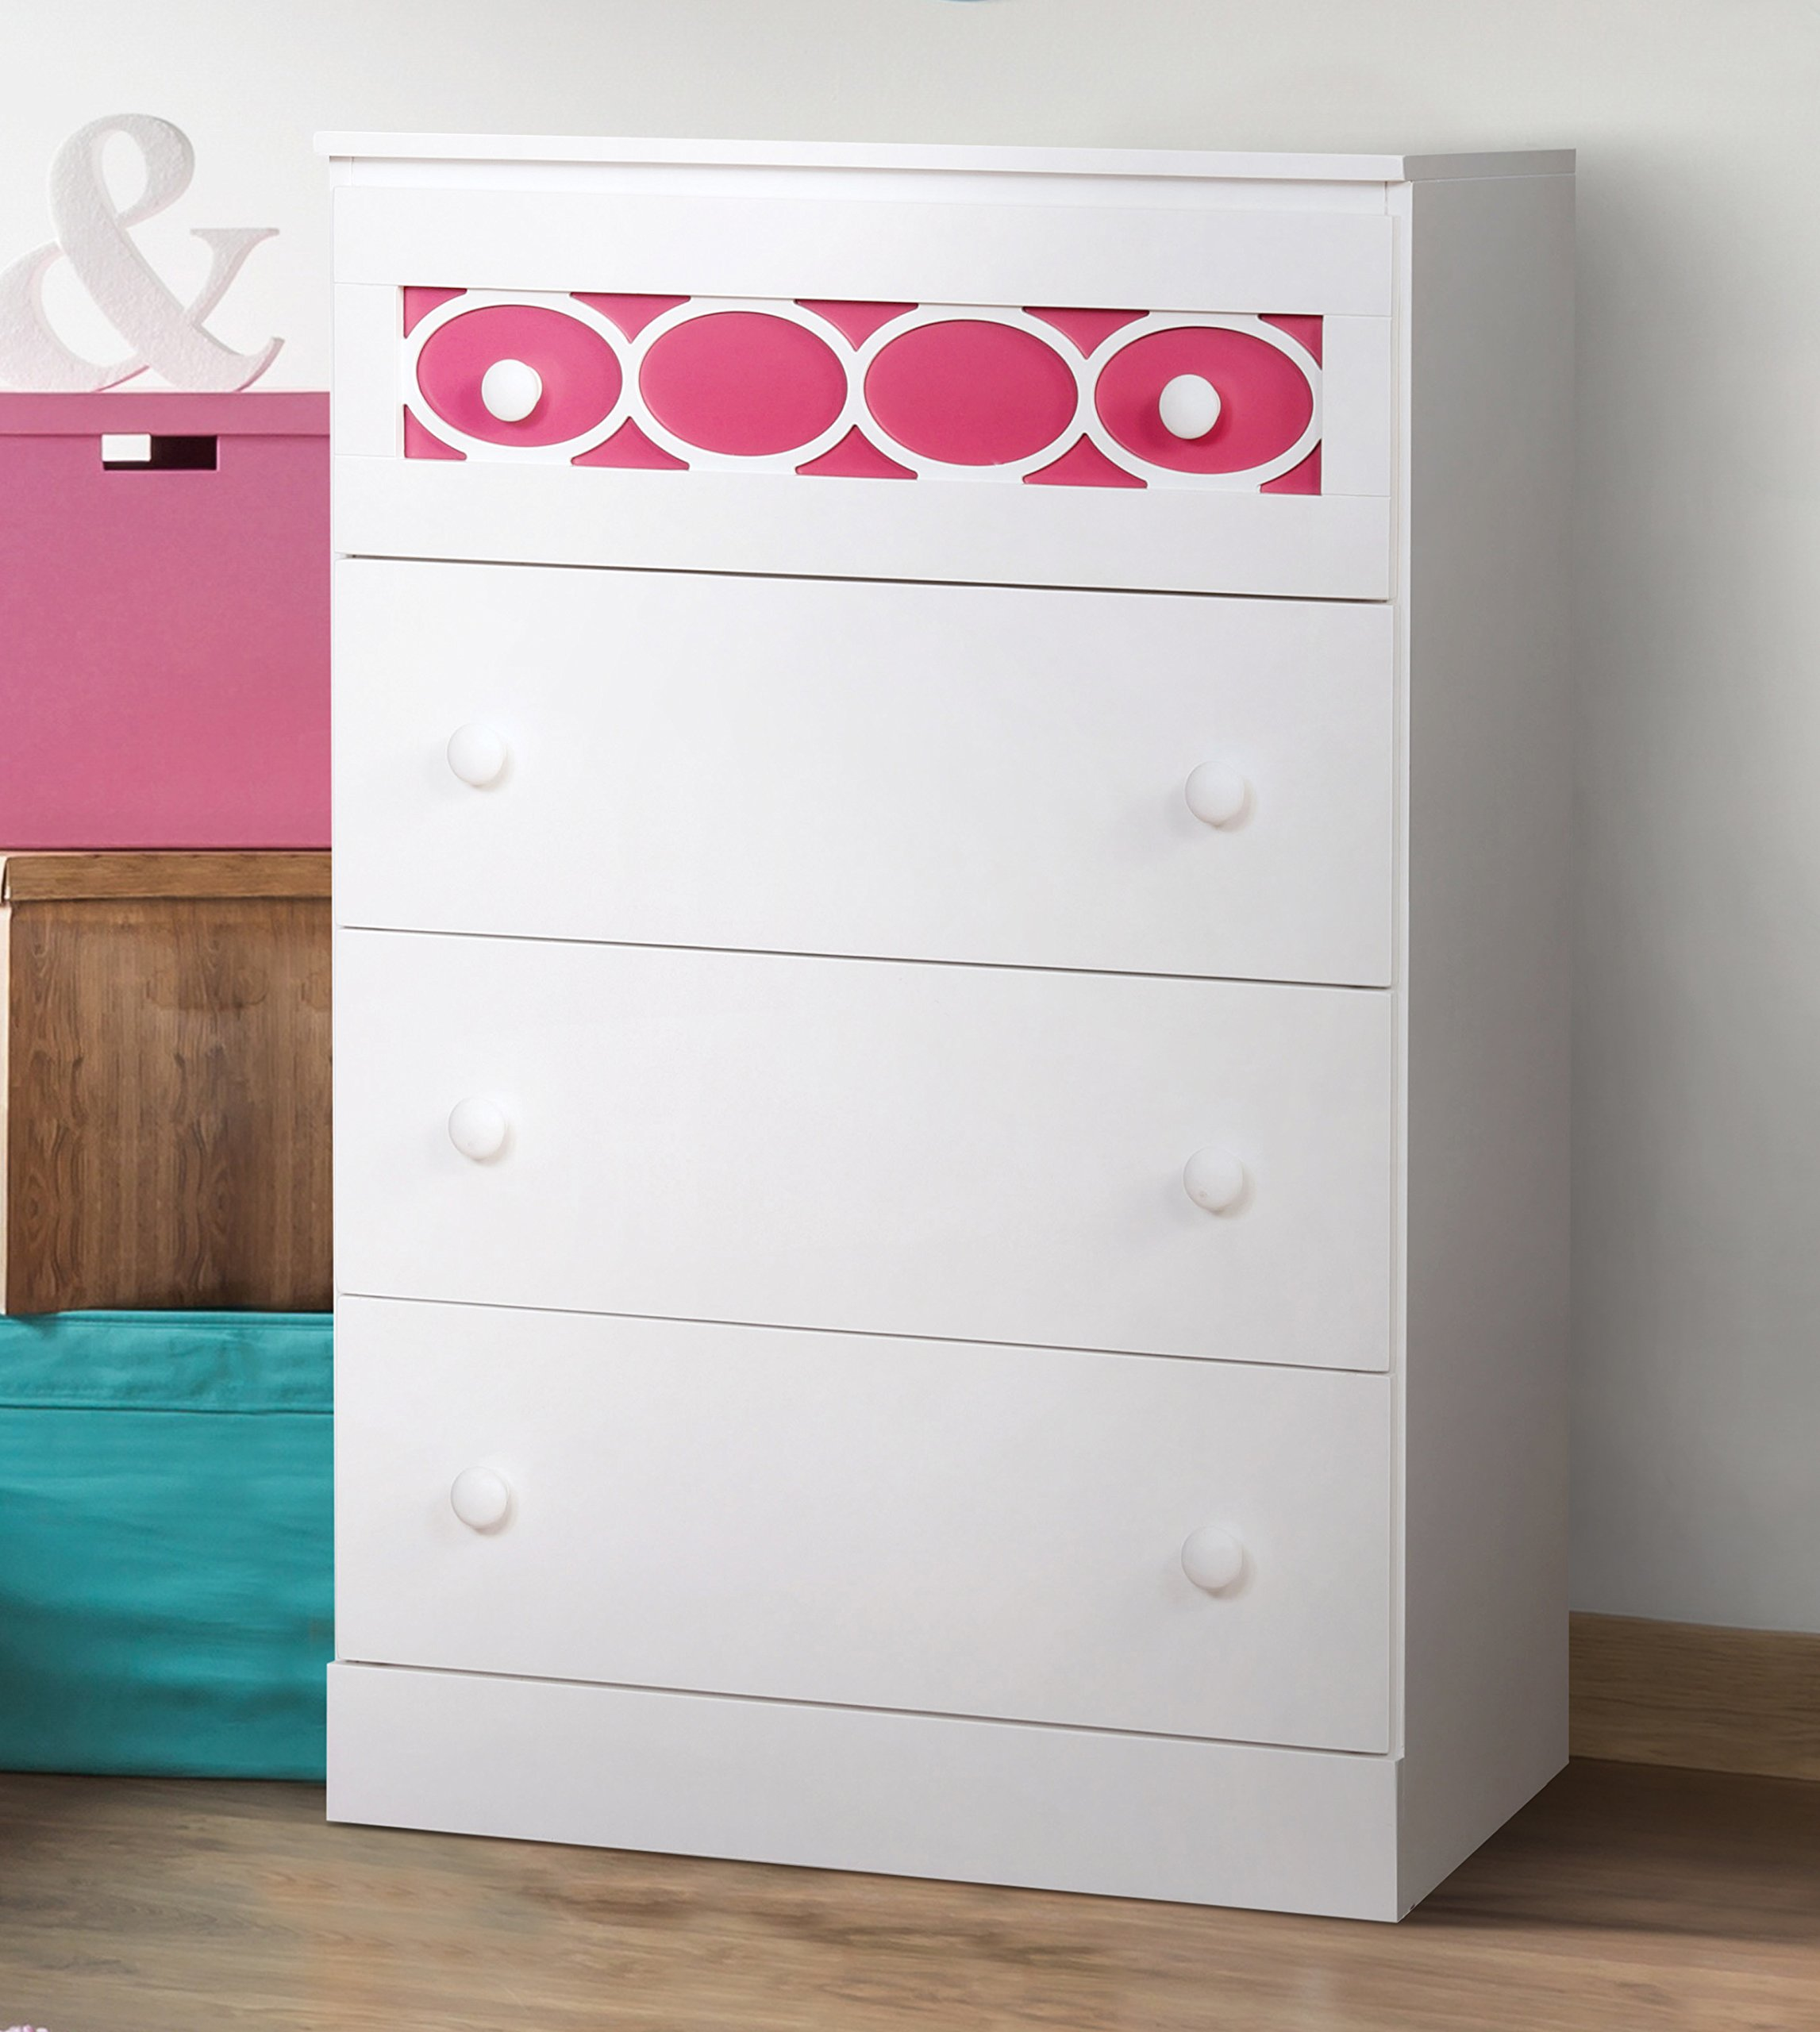 HOMES: Inside + Out IDF-7853PK-C Roka Chest Contemporary, Pink by HOMES: Inside + Out (Image #2)